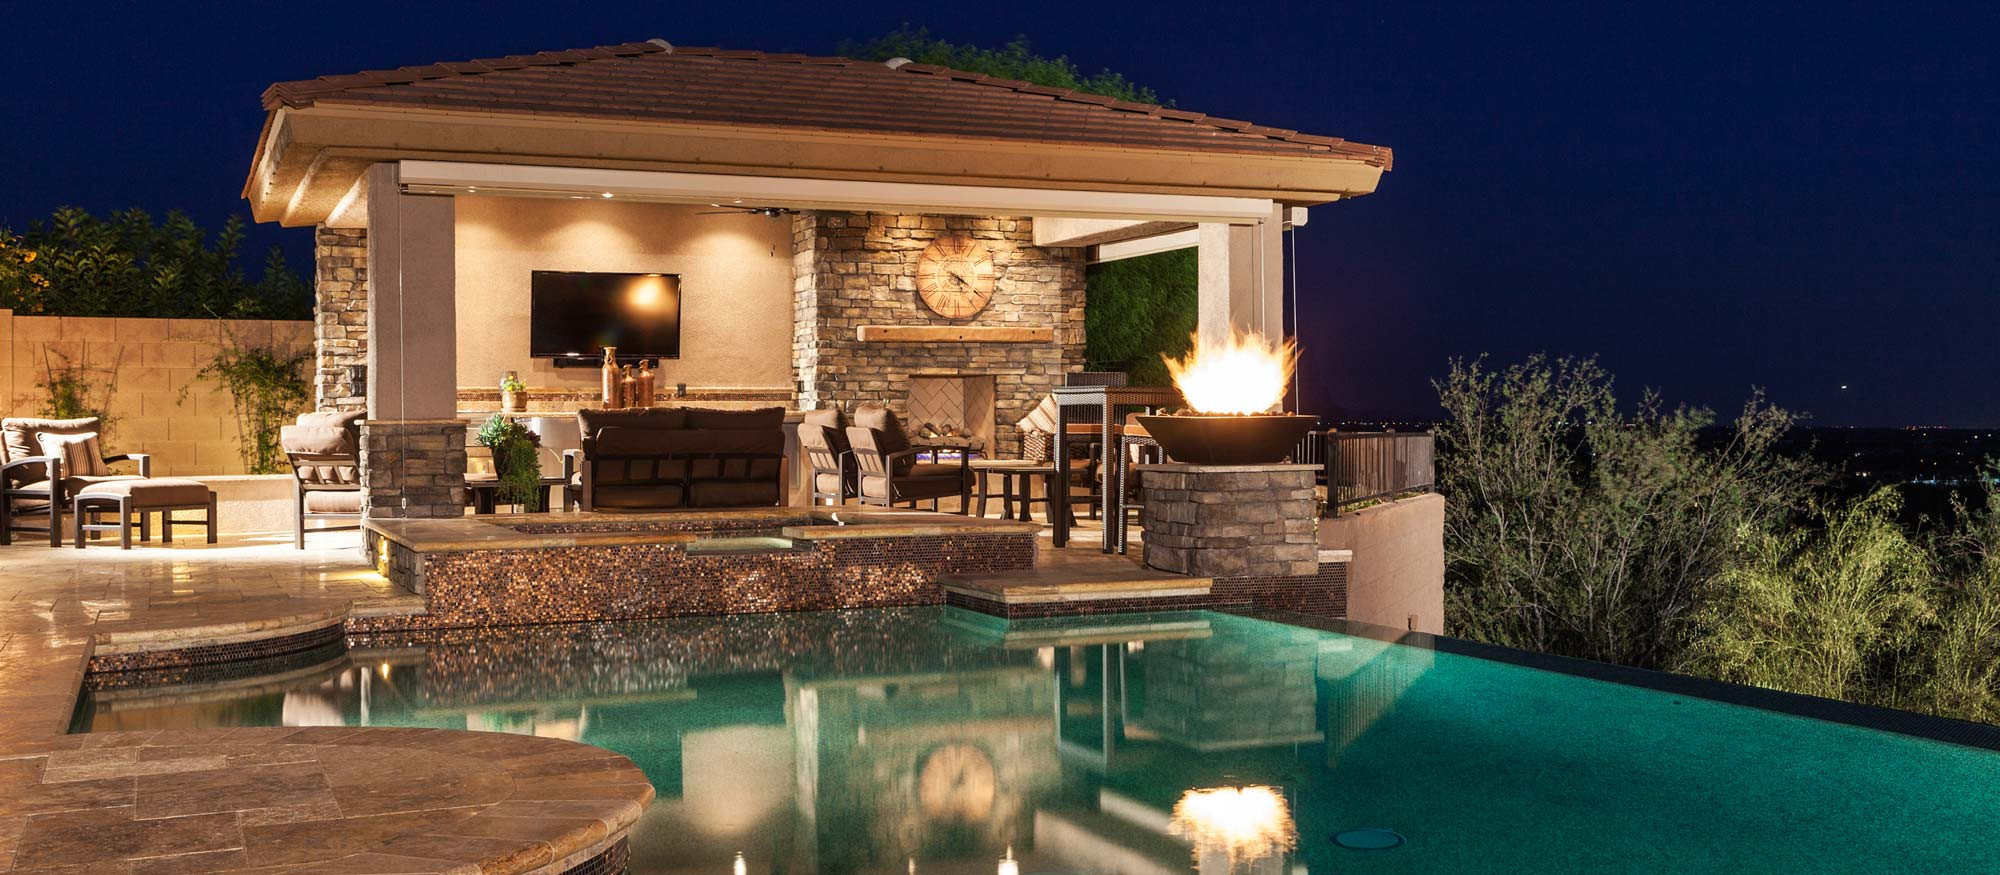 Backyard: Cool Backyard Pool Designs For Your Outdoor ...